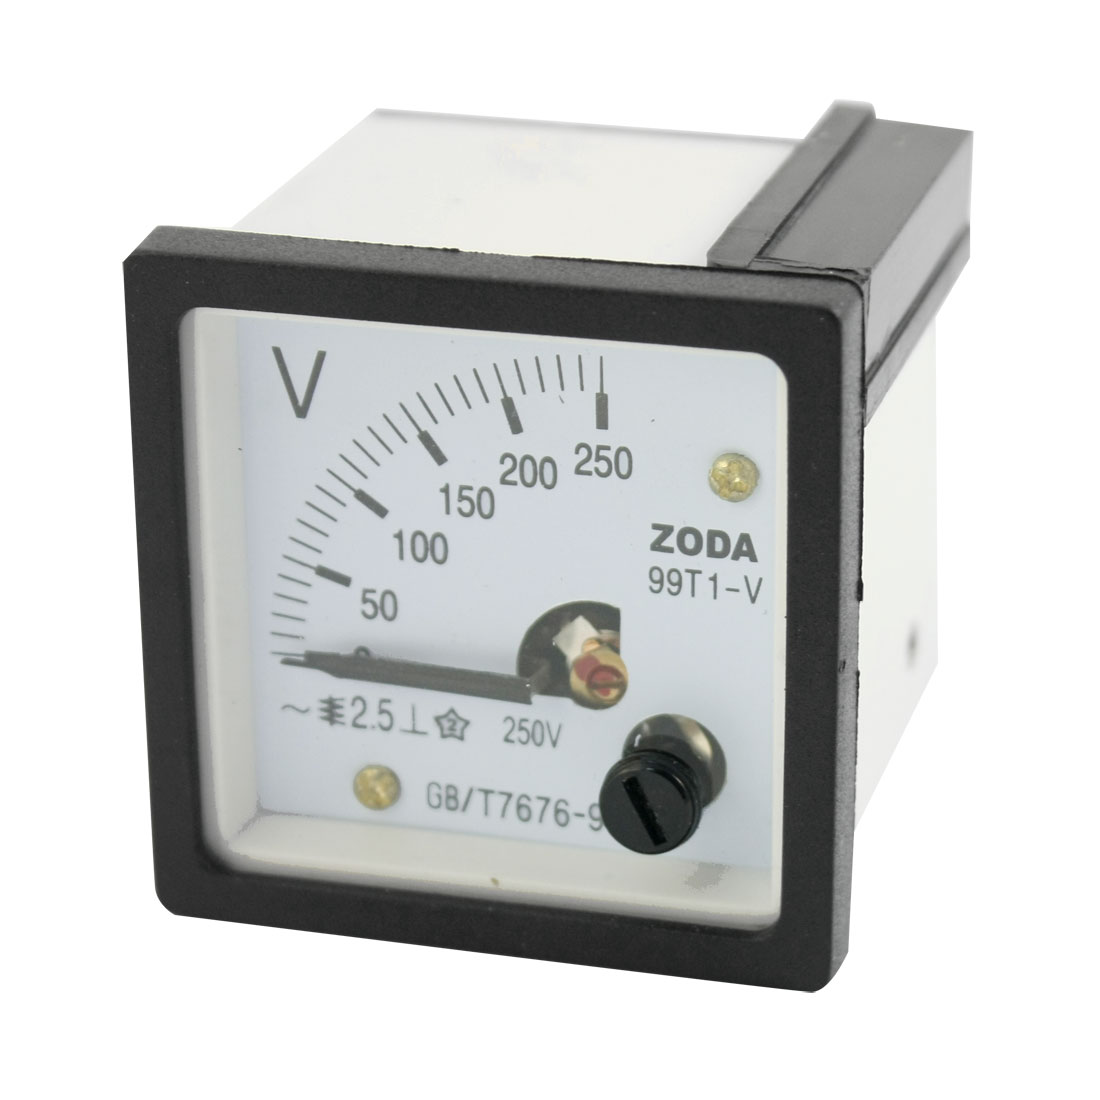 AC 0-250V Class 2.5 Square Analog Volt Panel Mount Meter Gauge